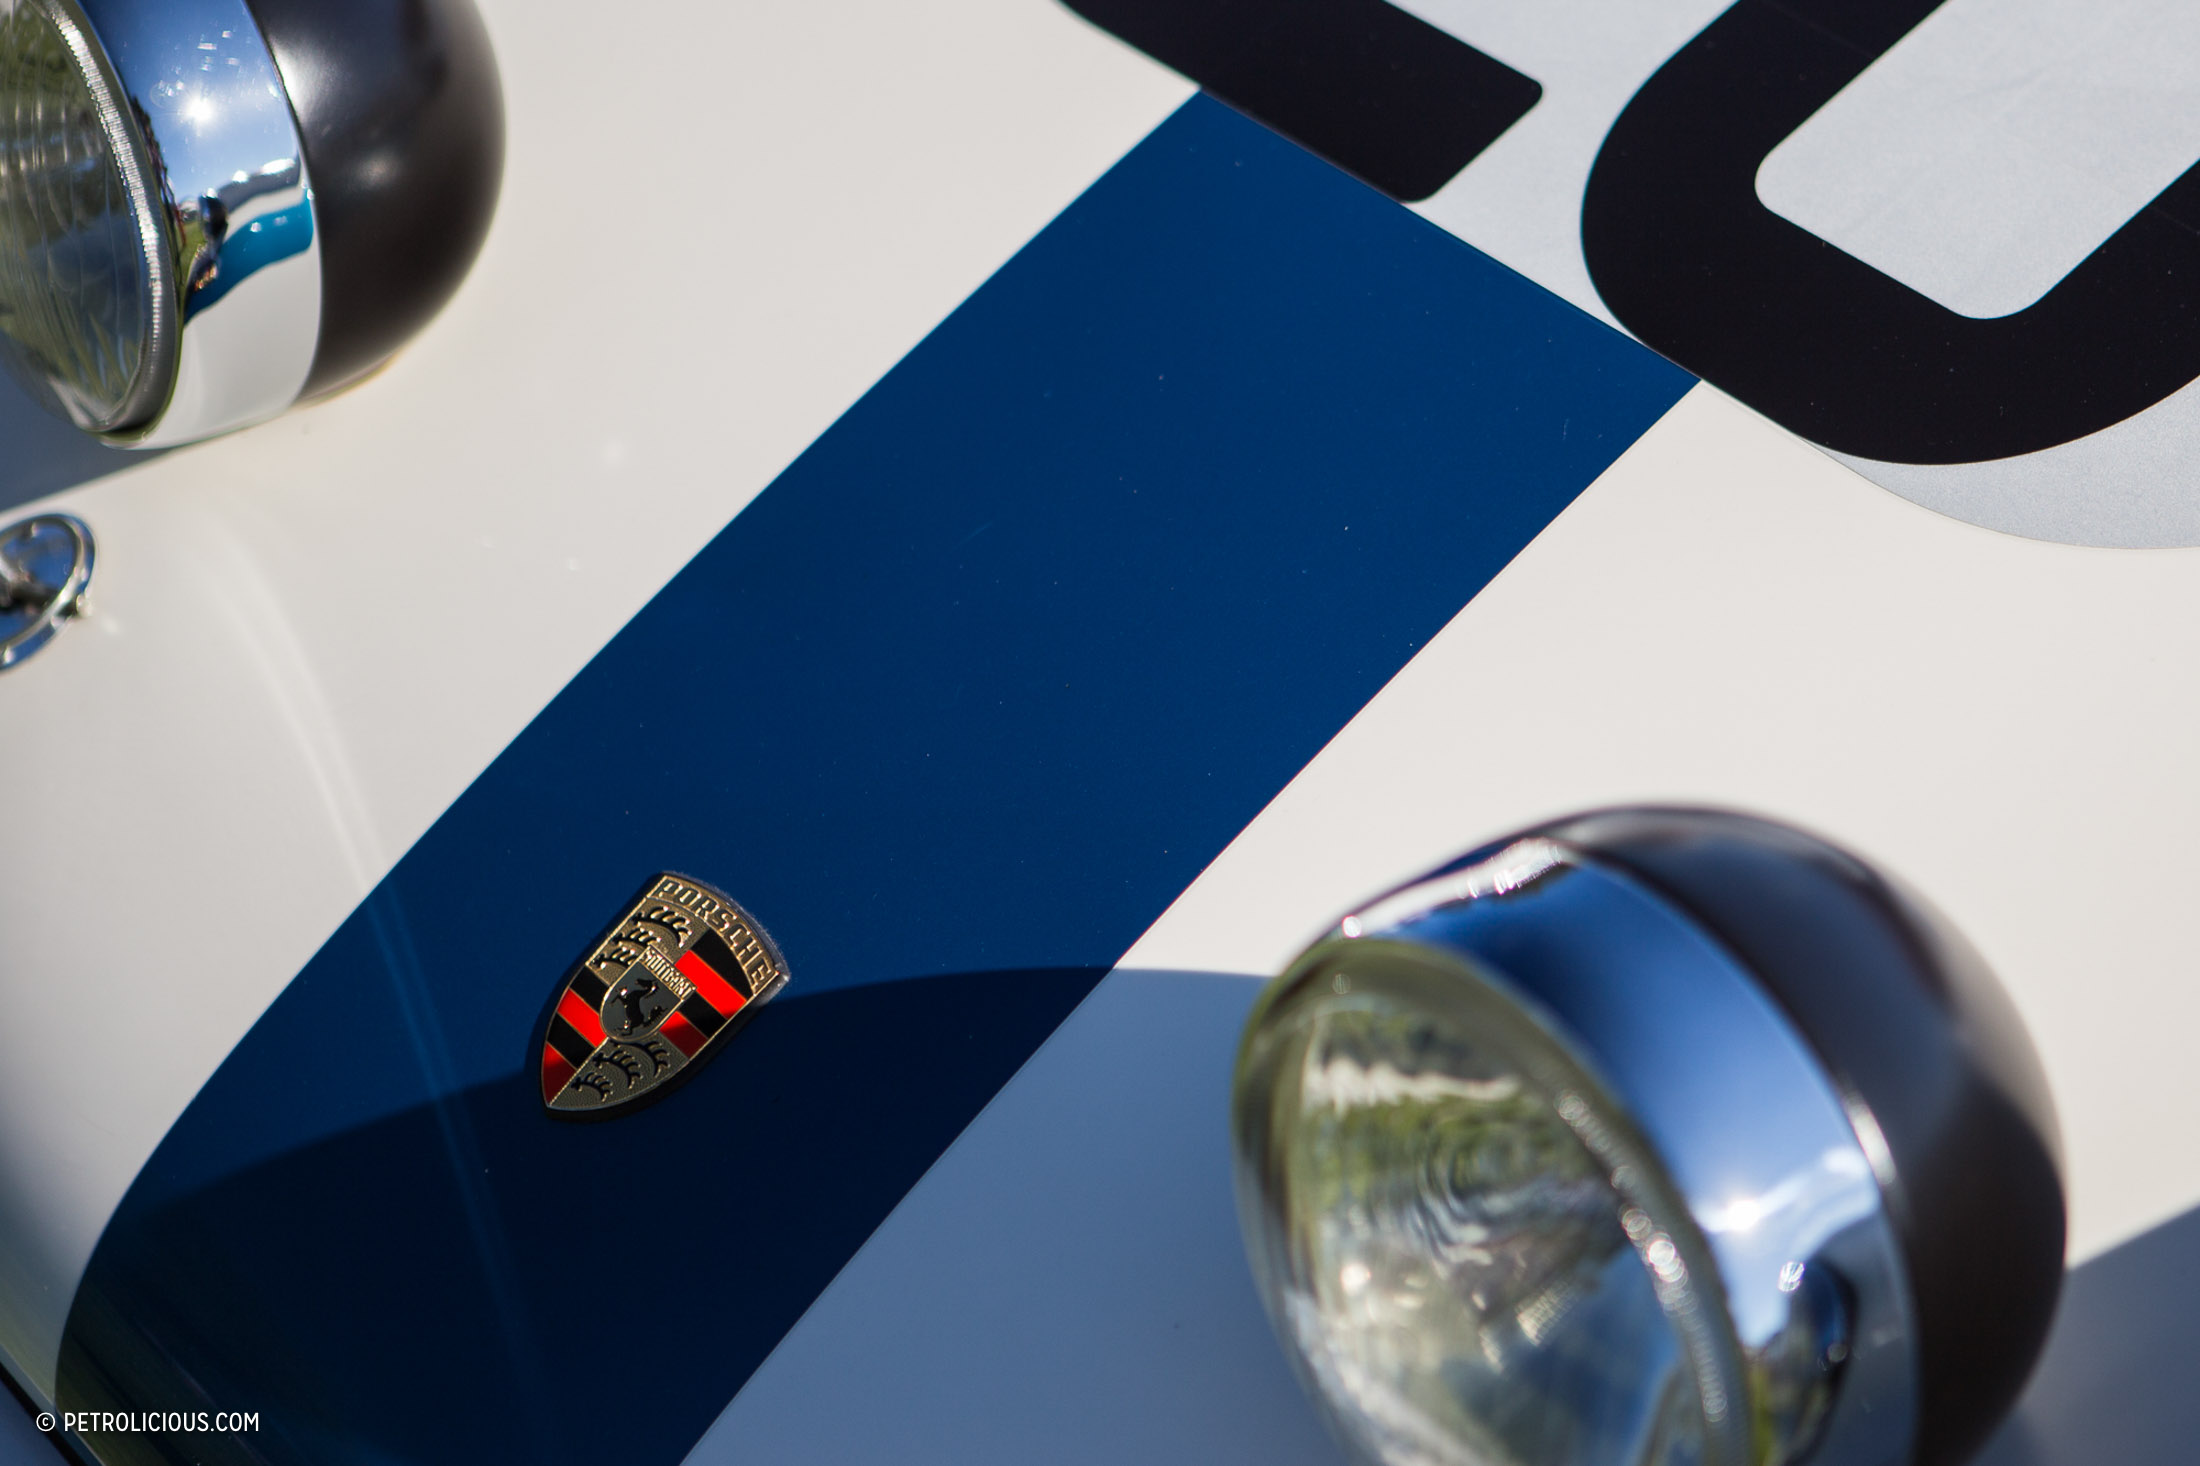 Winners Still Stand Out At The Quail | Petrolicious